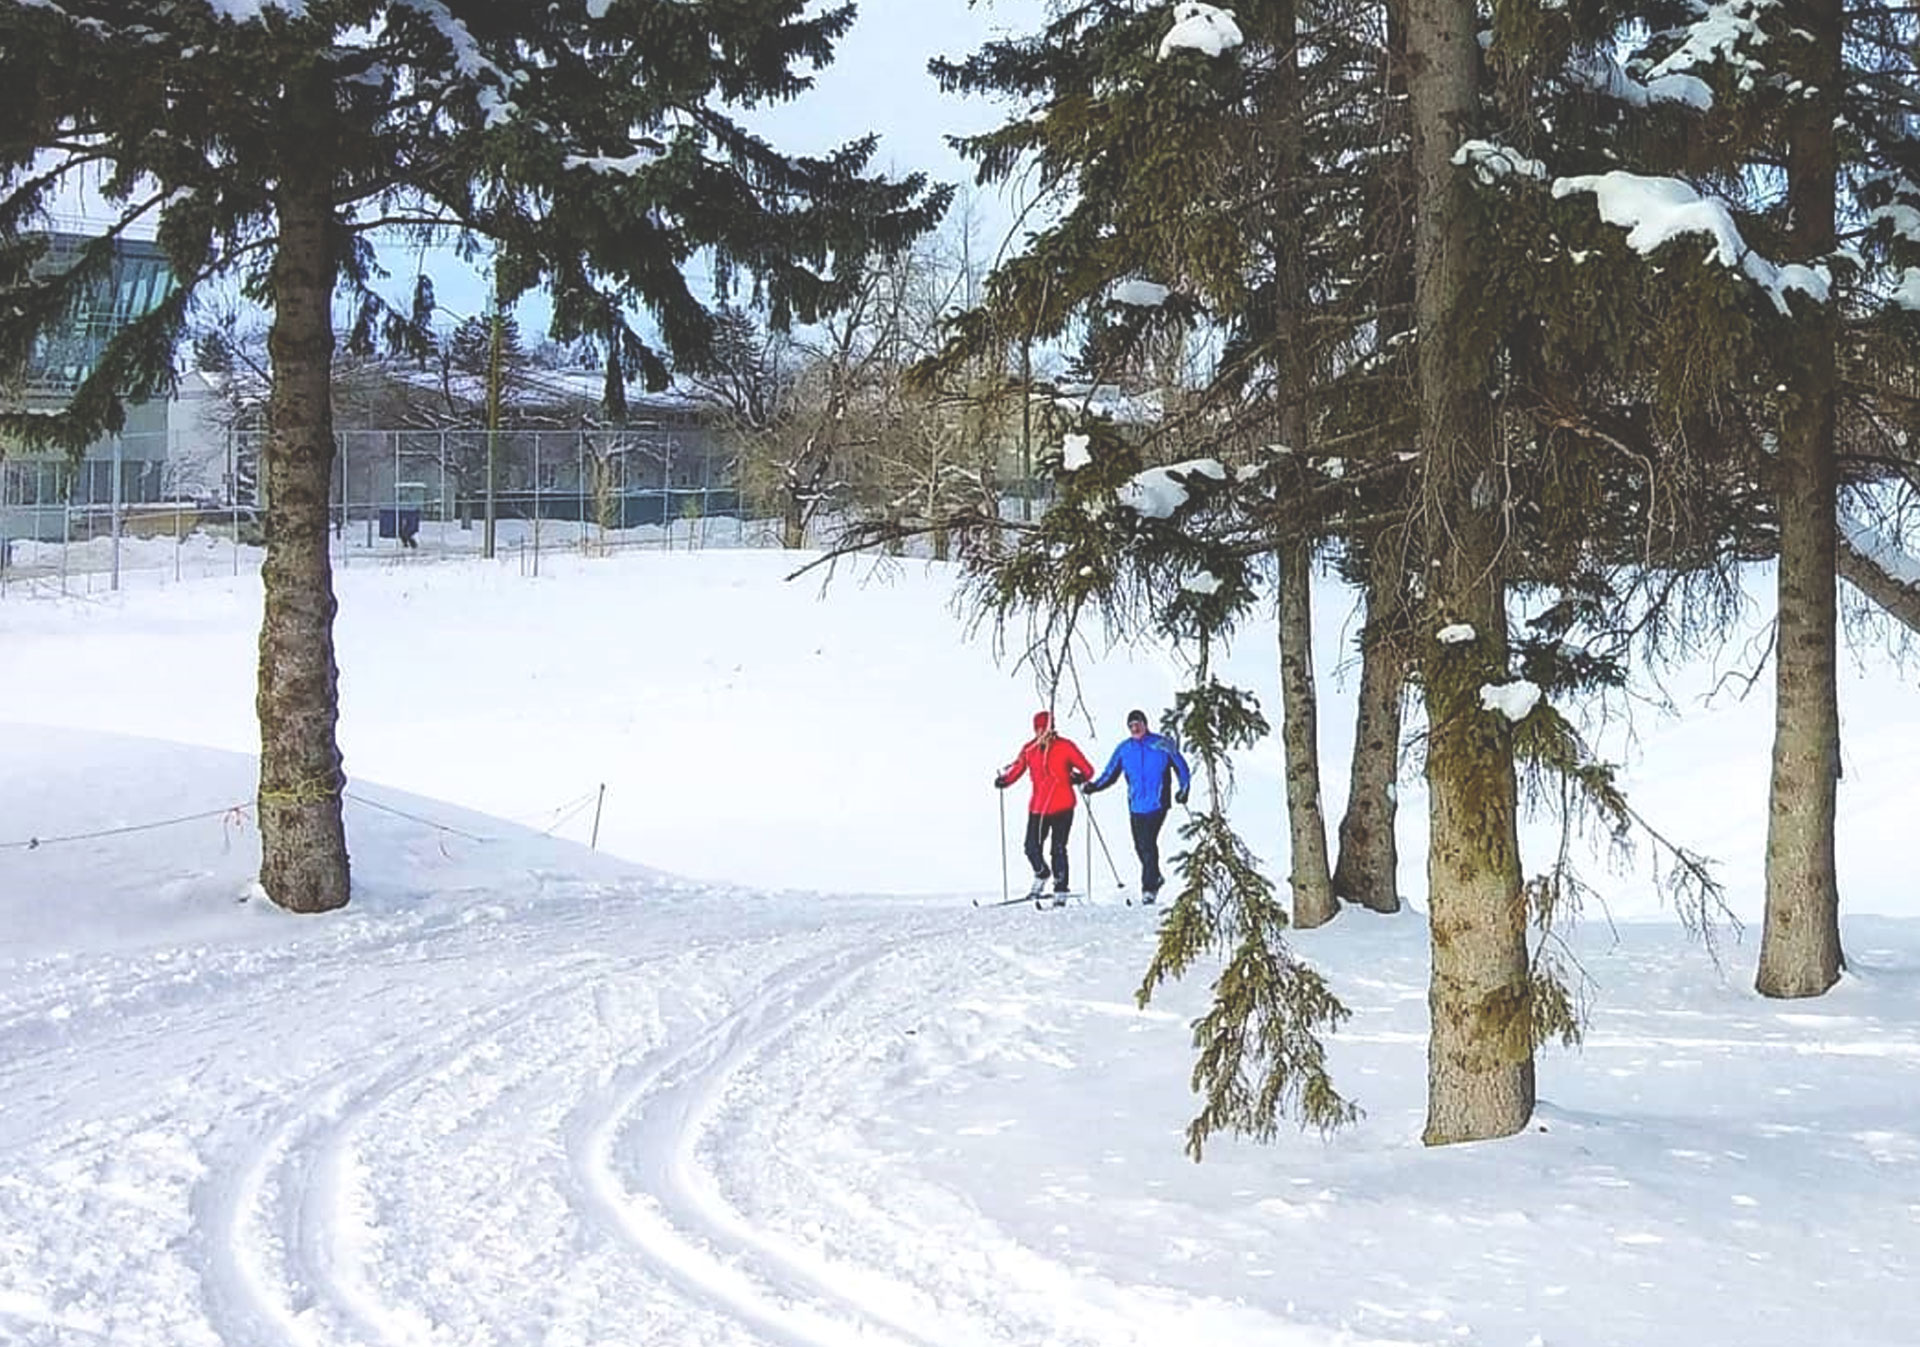 Cross country skiing at the Shaganappi Point Golf Course in Calgary (Photo credit: @dabertime on Instagram).